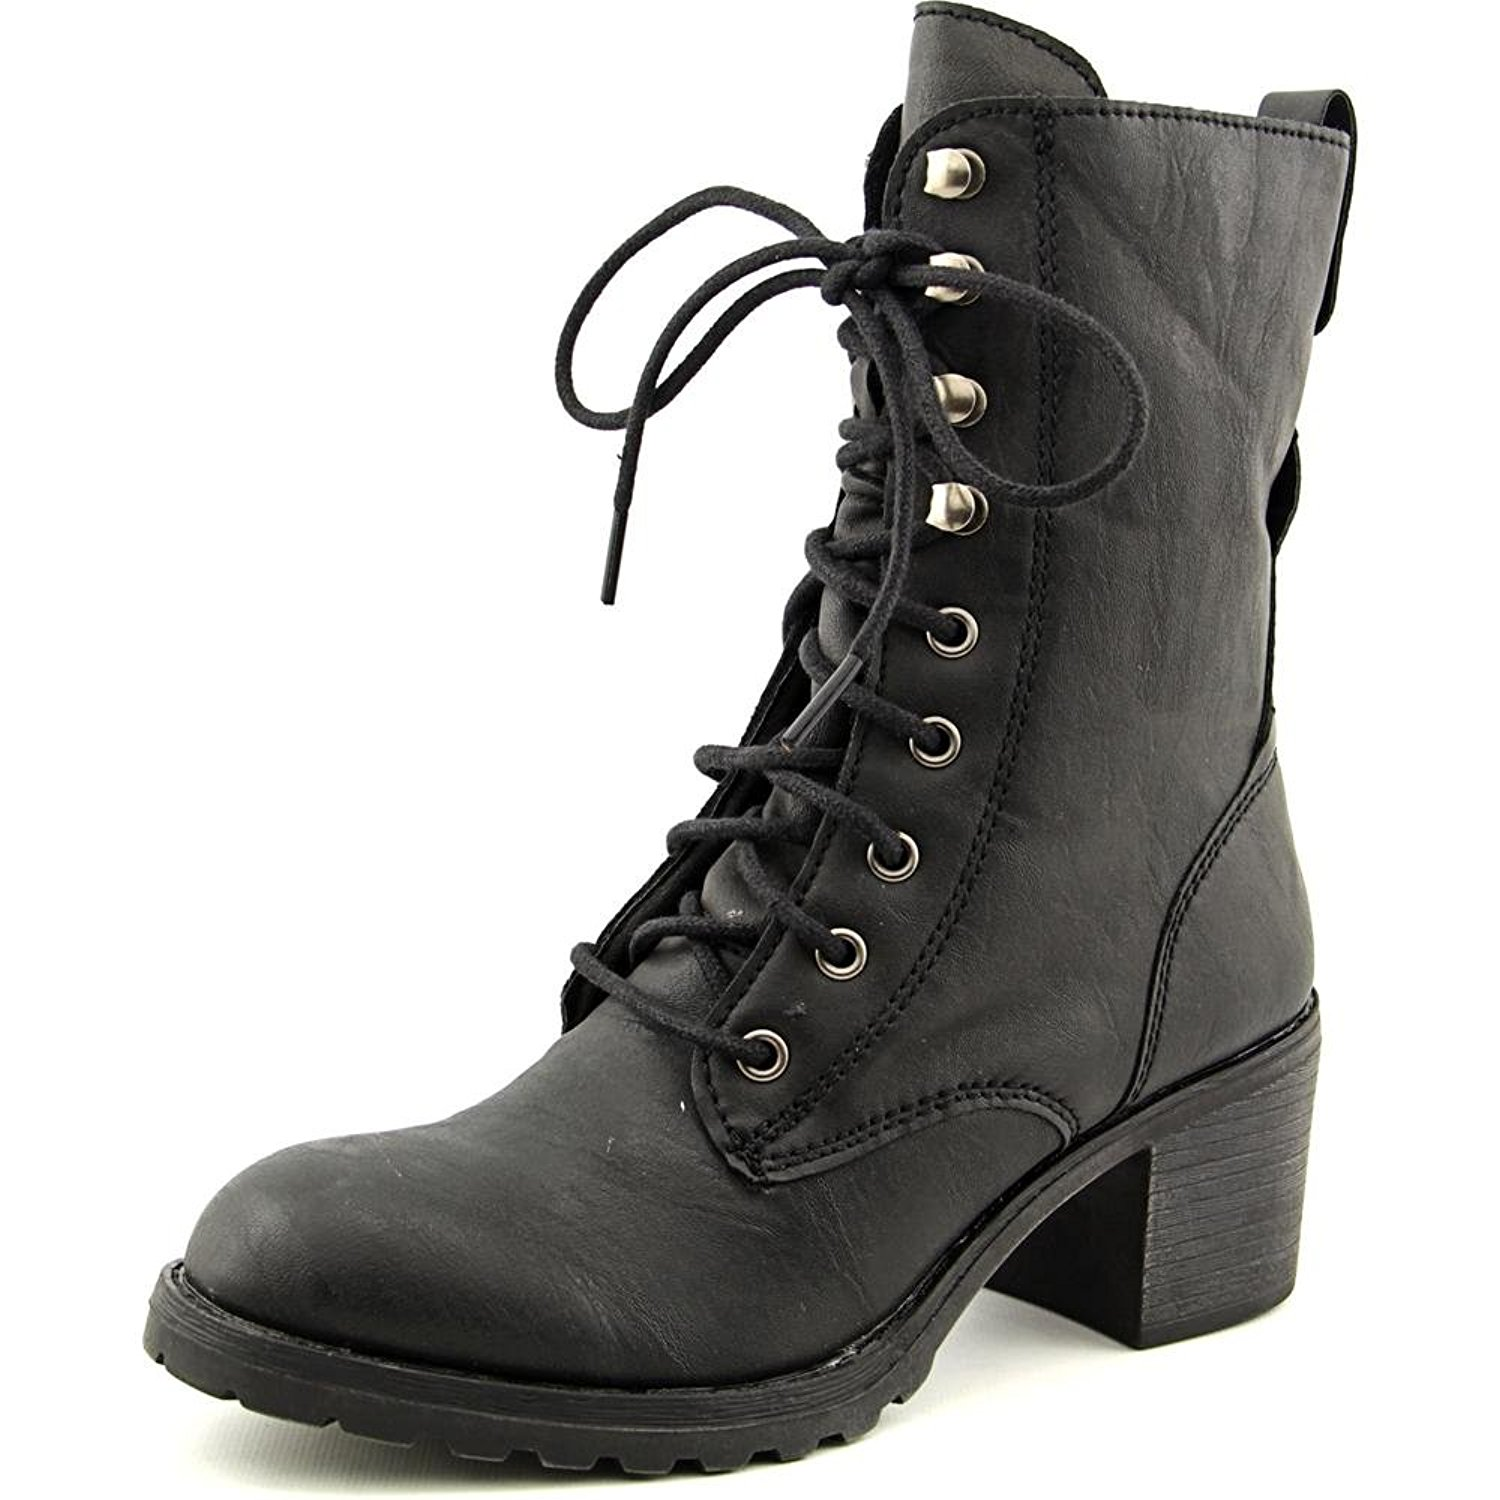 American Rag Zack Women's Lace Up Military Combat Boots